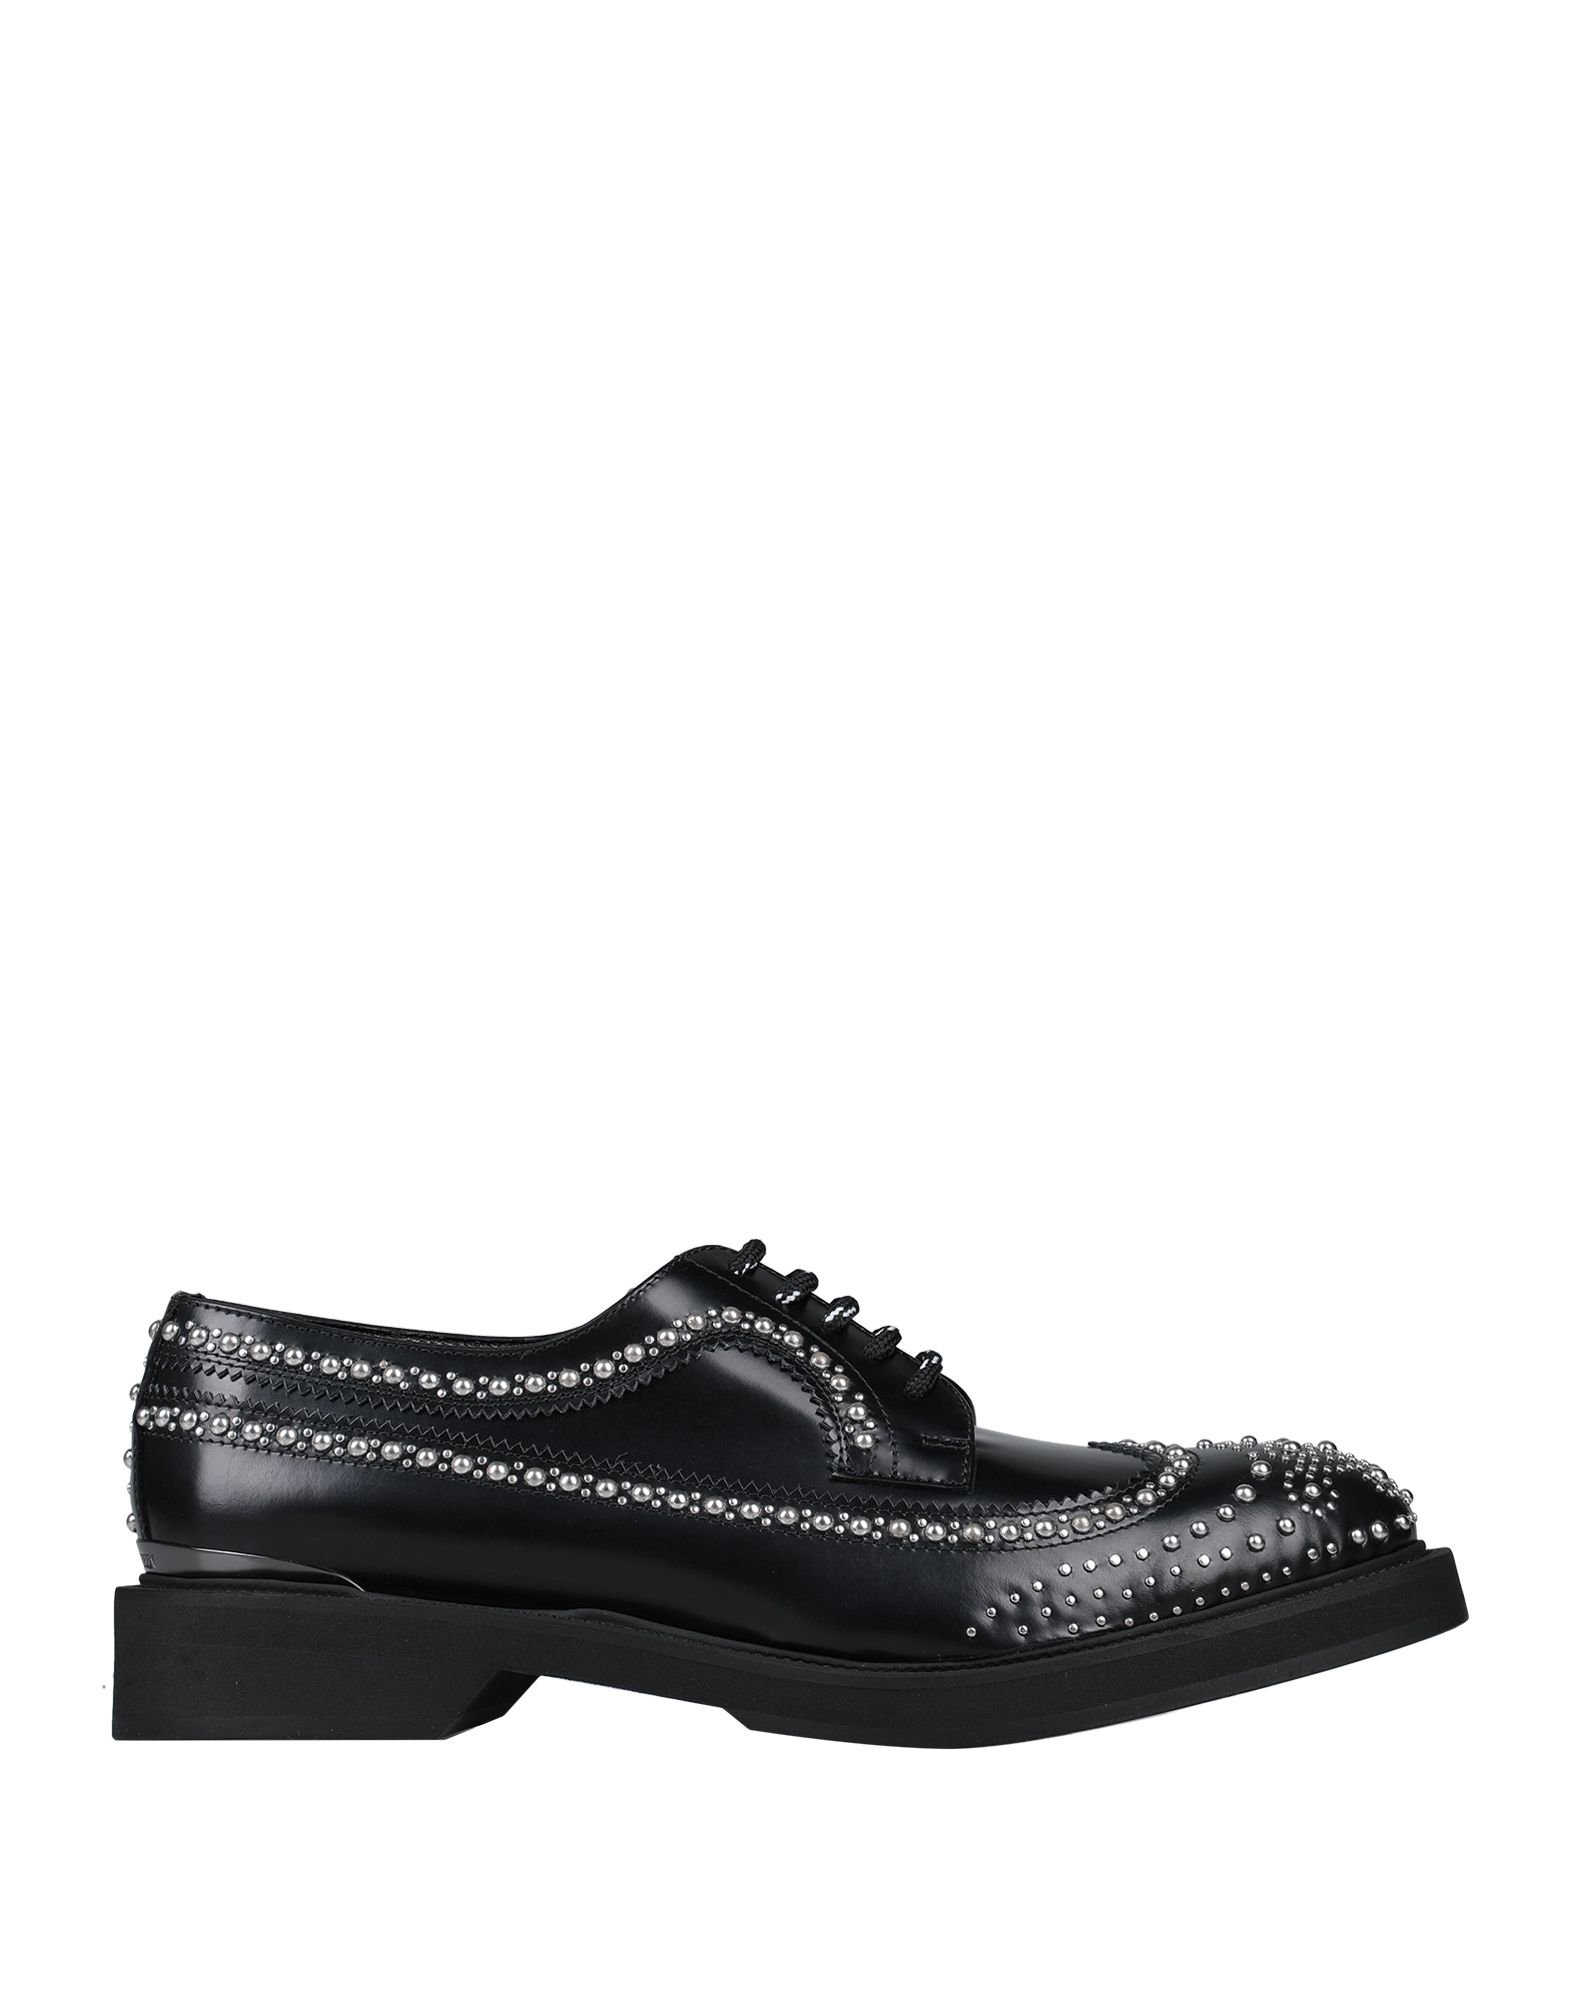 ALEXANDER MCQUEEN Lace-up shoes. studs, logo, solid color, round toeline, square heel, rubber heel, leather lining, rubber sole, contains non-textile parts of animal origin, small sized. Soft Leather